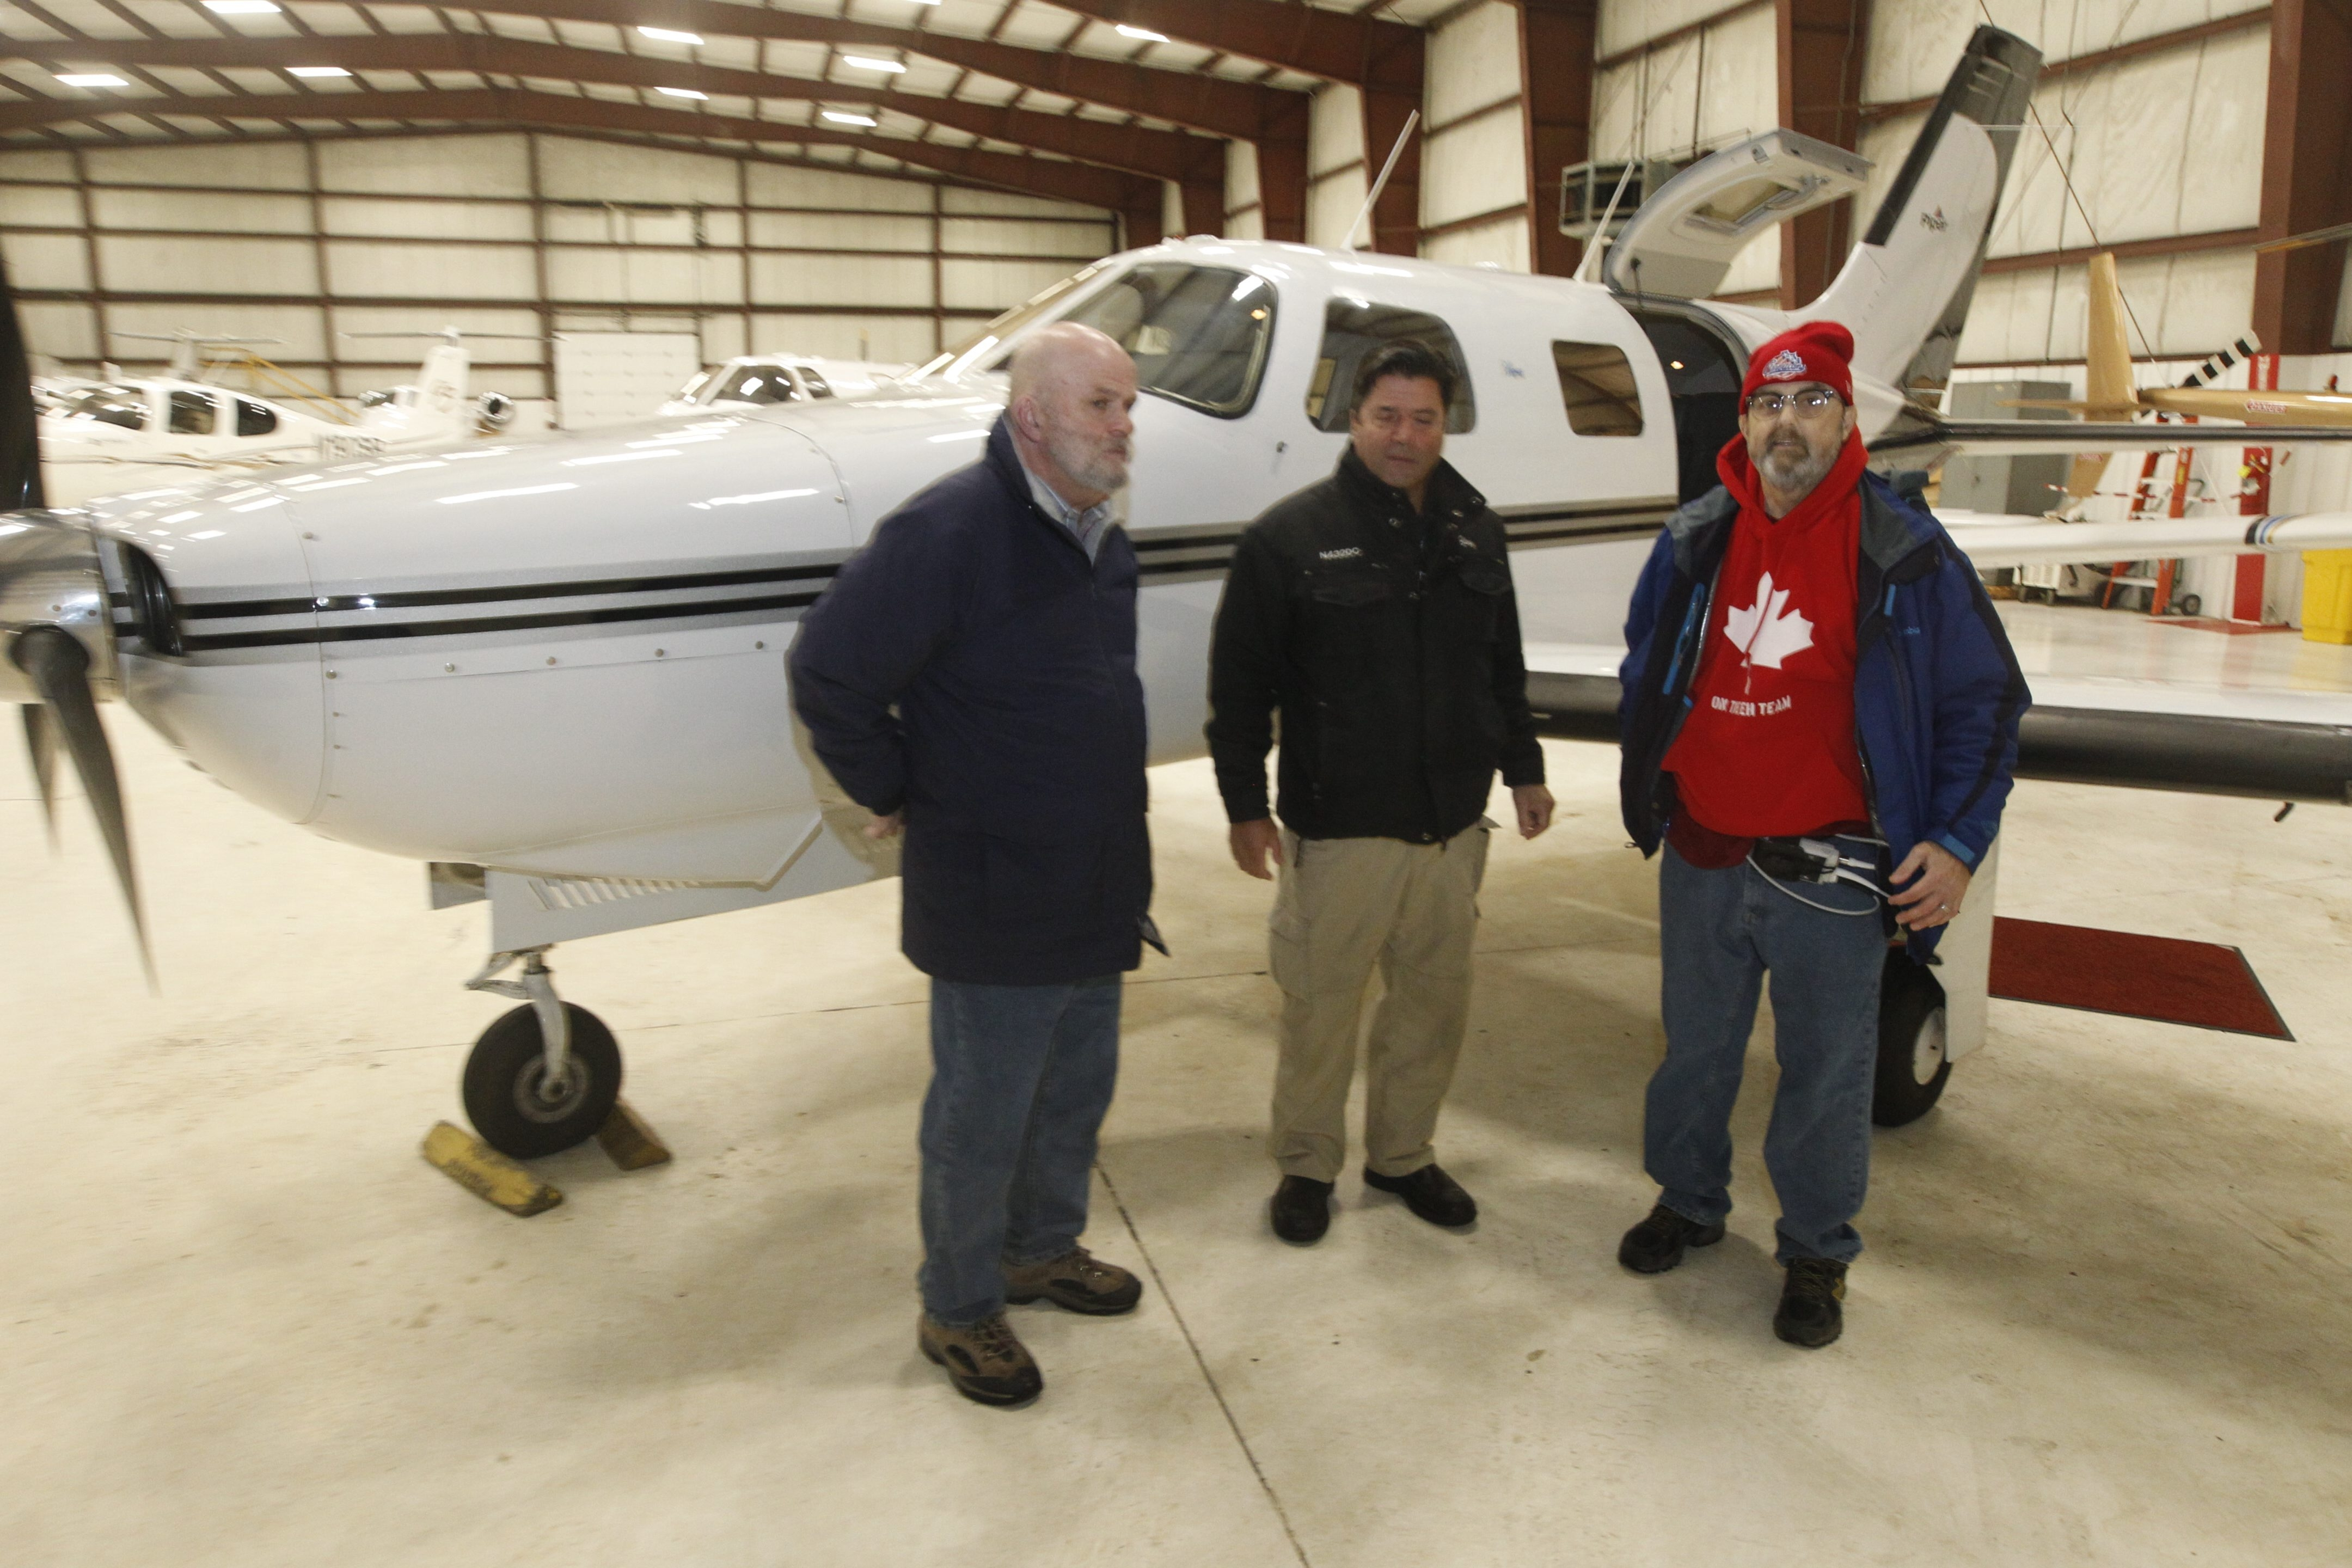 Tim Day, right, a Town of Tonawanda police officer, poses with Joseph DeMarco, Wings Flights of Hope founder, center, and his brother Michael as they prepare to board a plane at Prior Aviation for a flight to Boston and Massachusetts General Hospital.